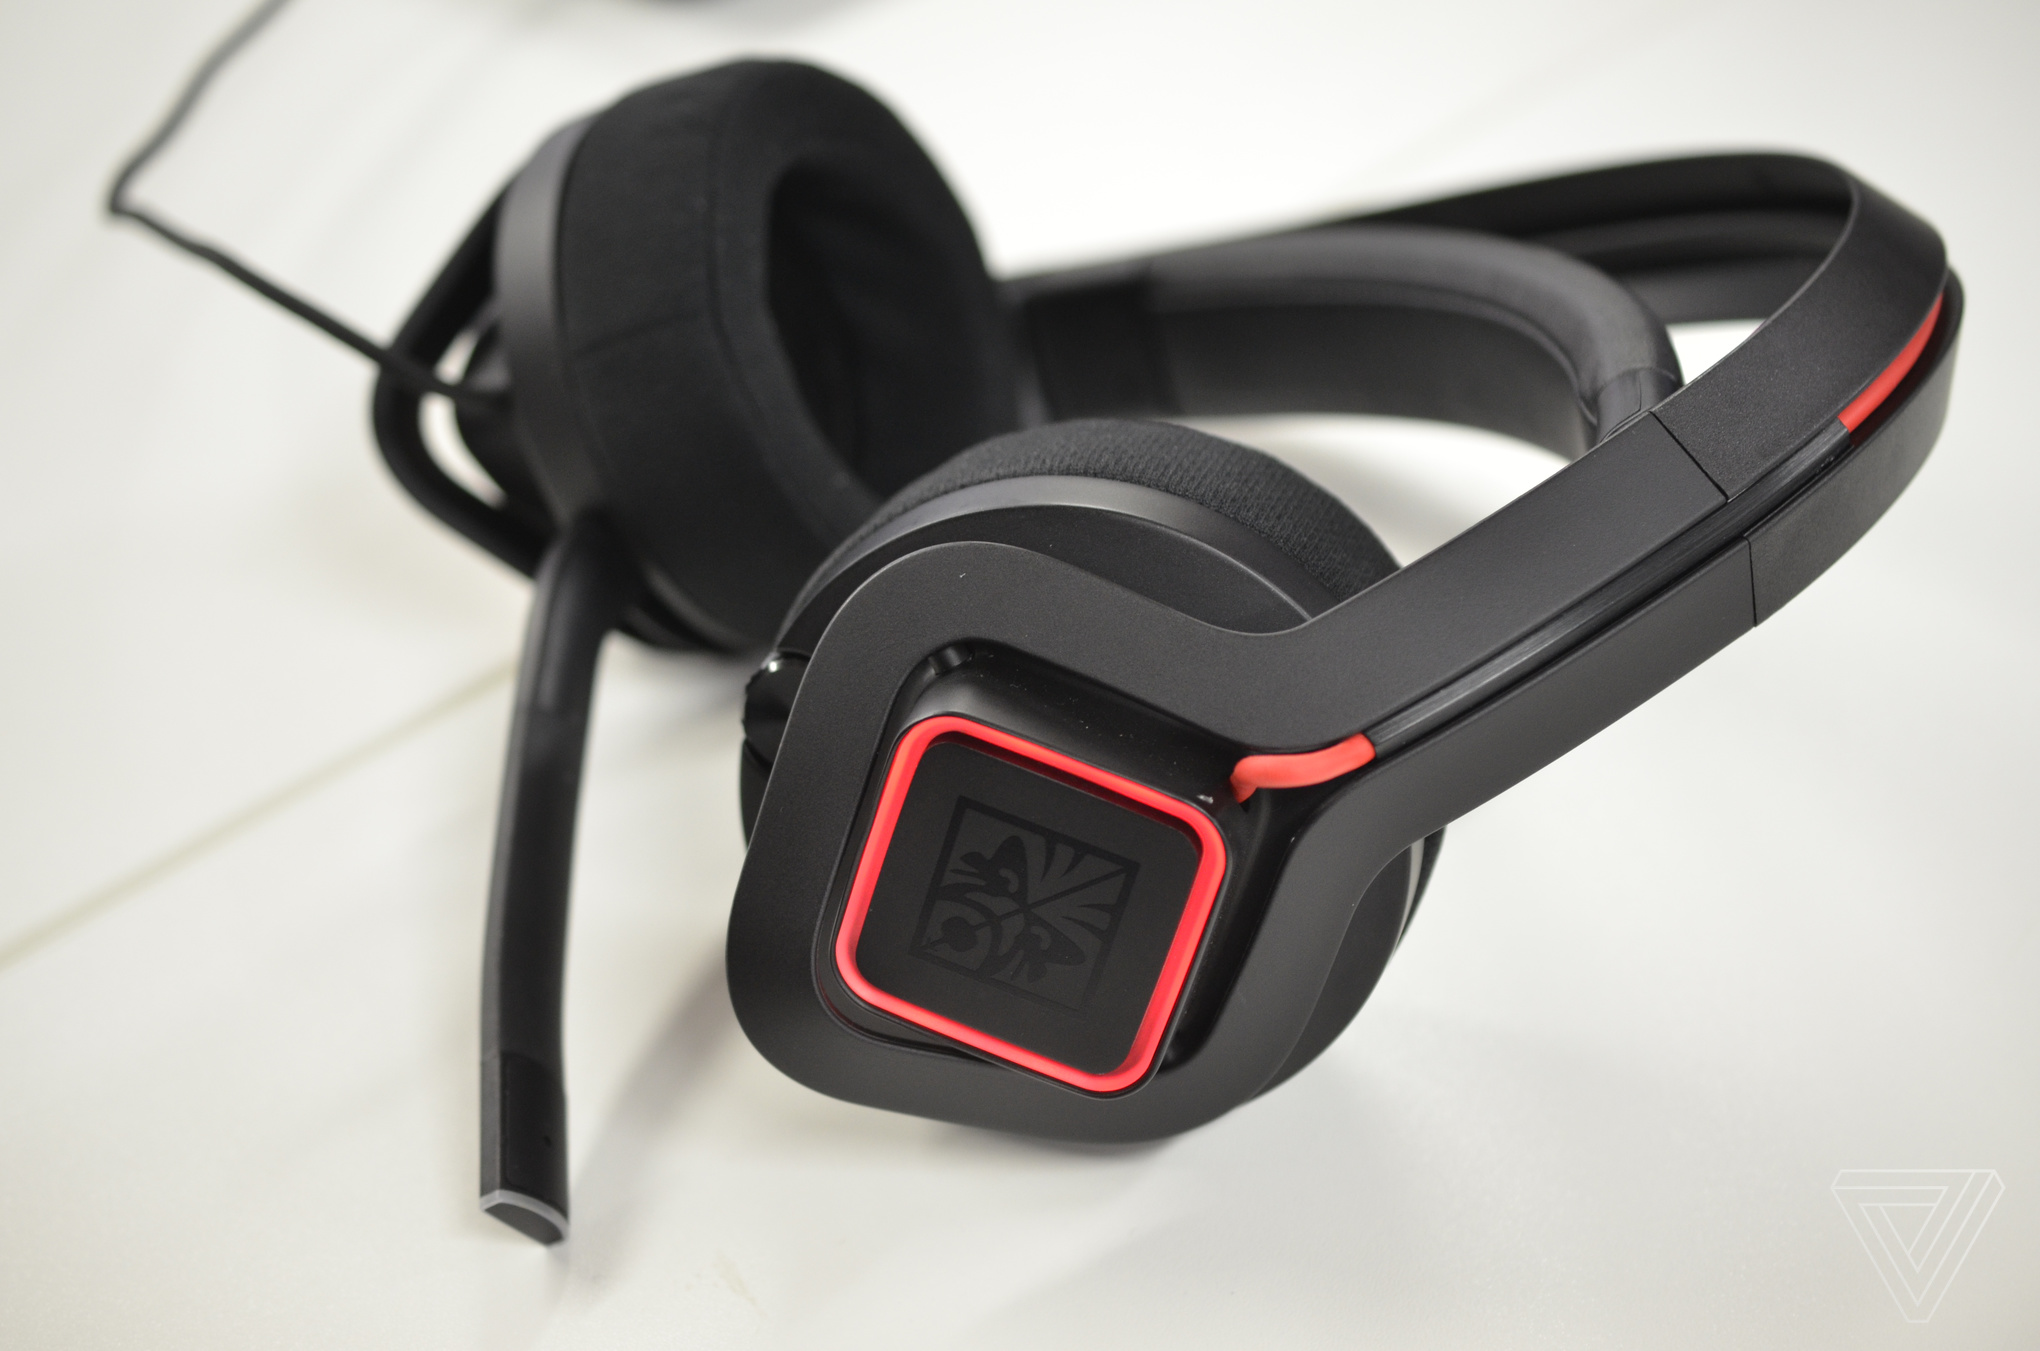 97877bf54e8 HP's Omen Mindframe Headset will be available in October priced at $199.  Grid View